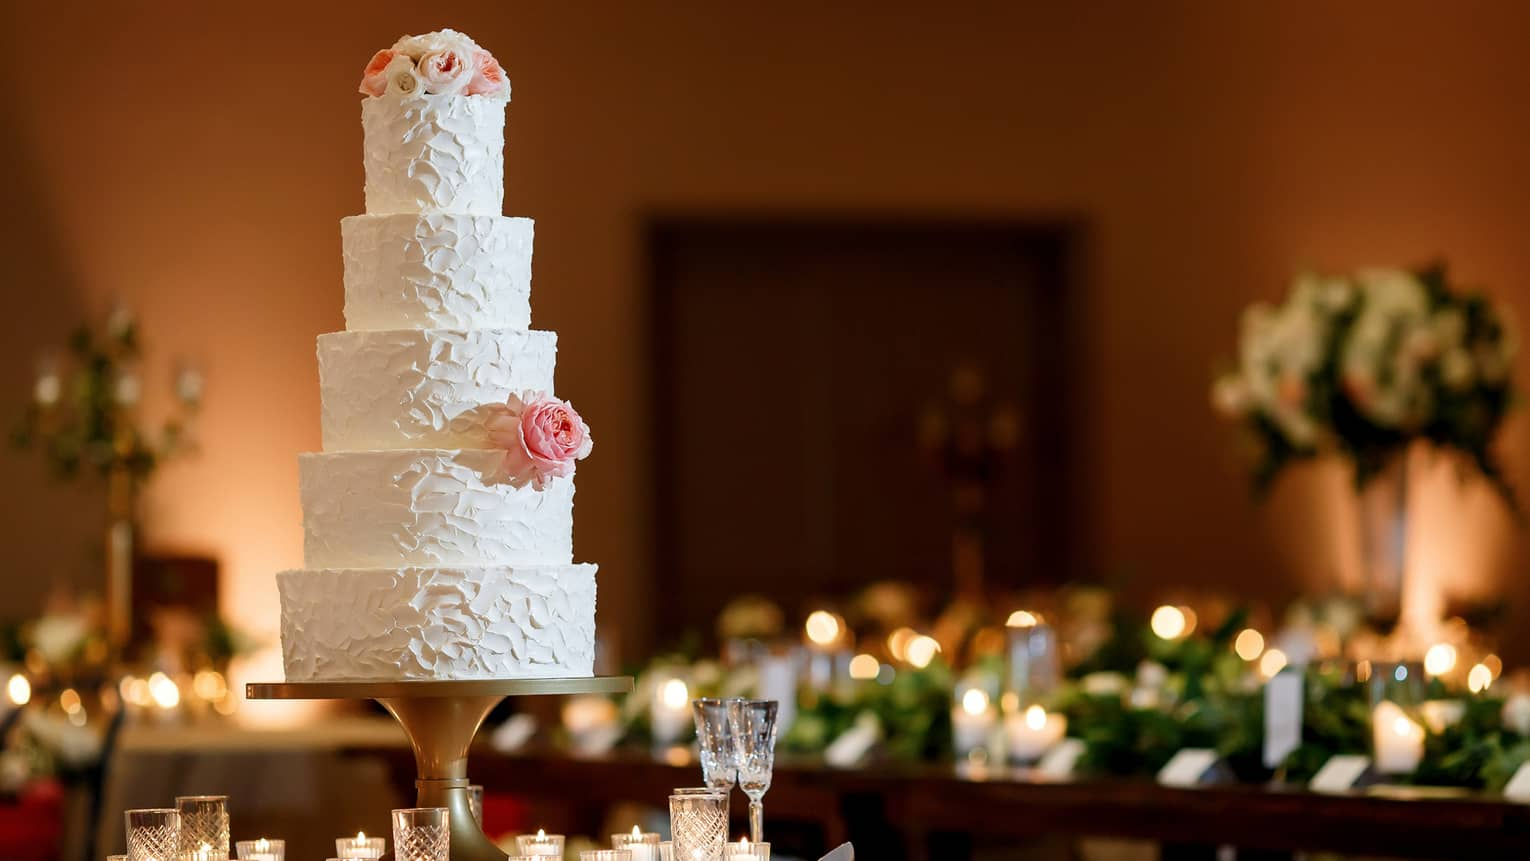 A five-tiered white wedding cake garnished with a white rose and some small white and pink flowers on the top tier , sits on a white round table surrounded by white candles